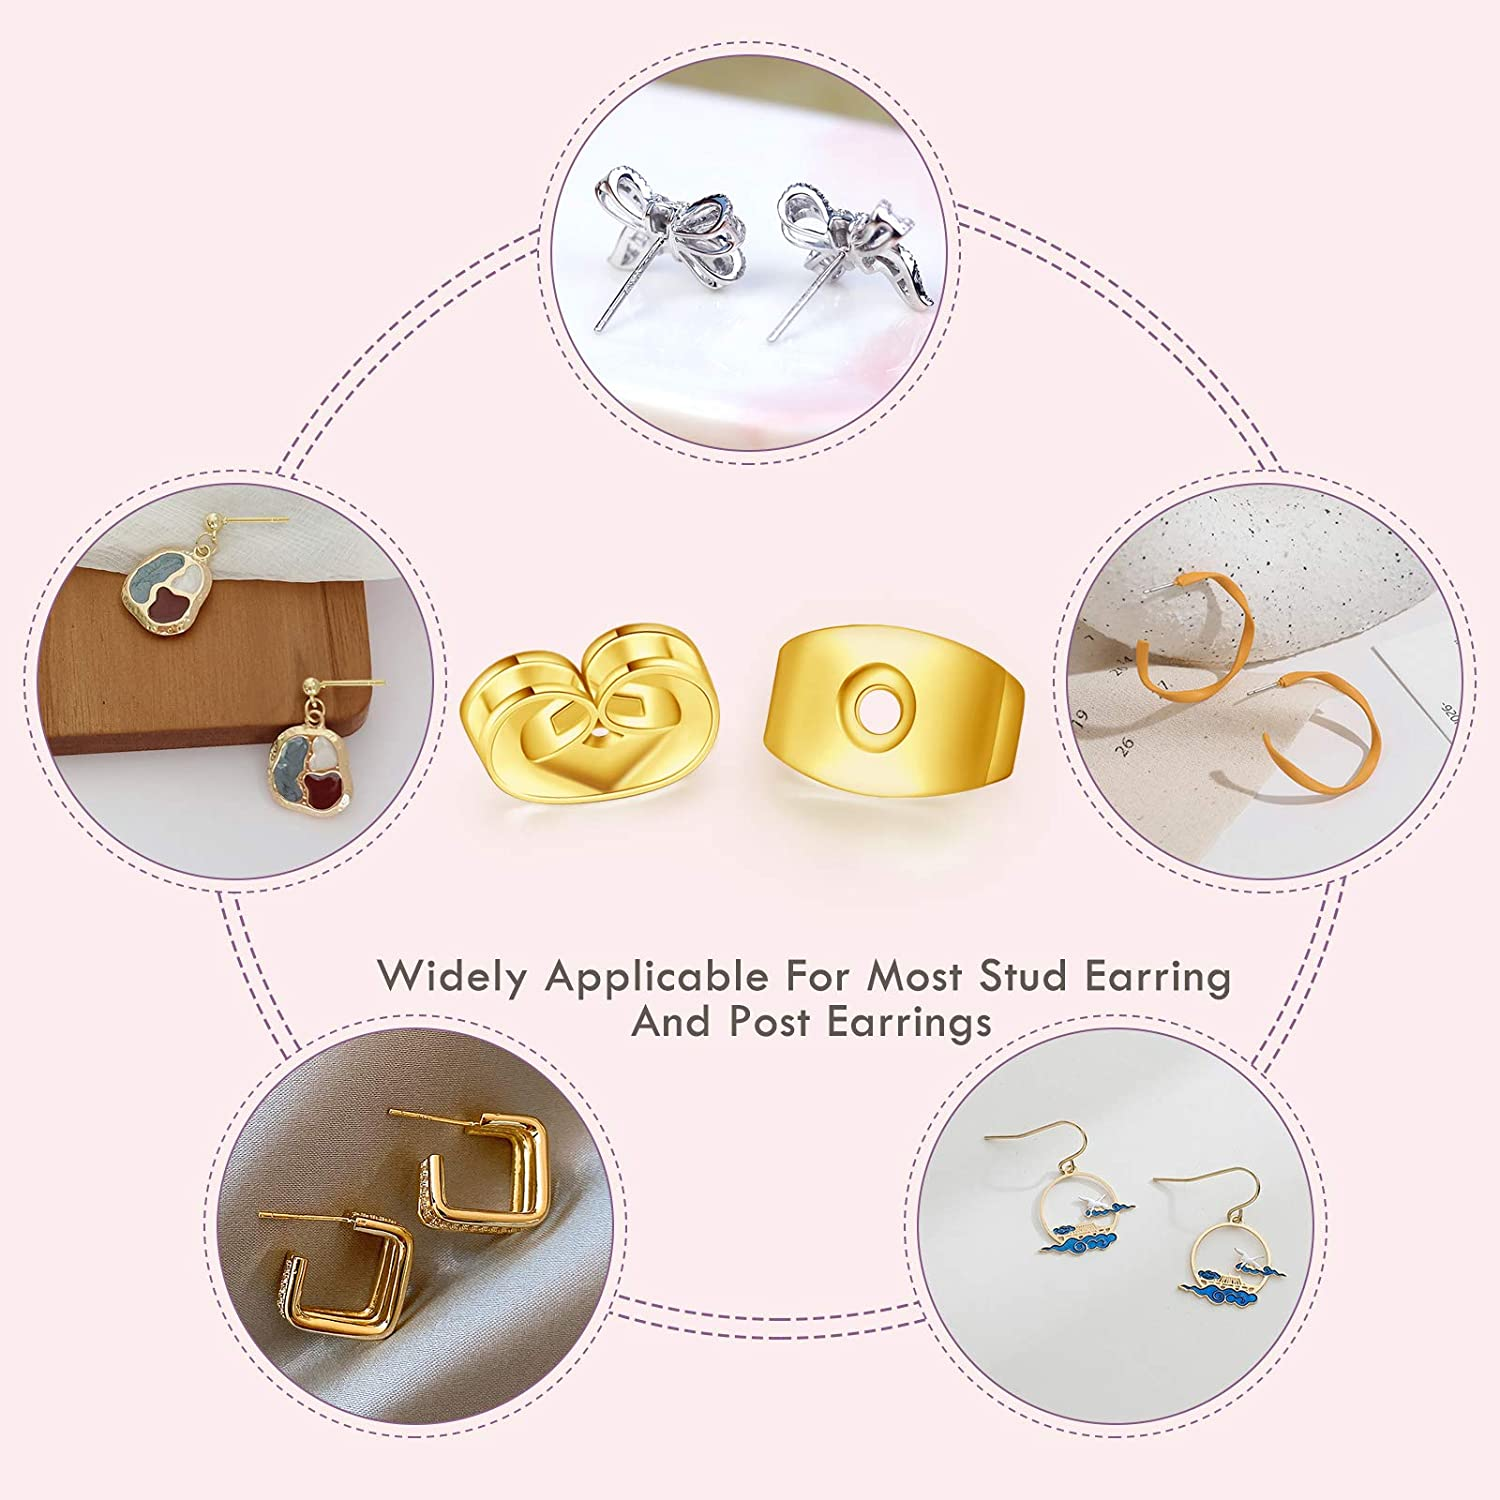 Hypoallergenic Flat Earring Backs for Droopy Ears Catmade 14k Gold Plated Earring Backs for Studs Secure 10Pcs//5Pairs Screw on Earring Backs//Earring Lifters//Earring Supplies